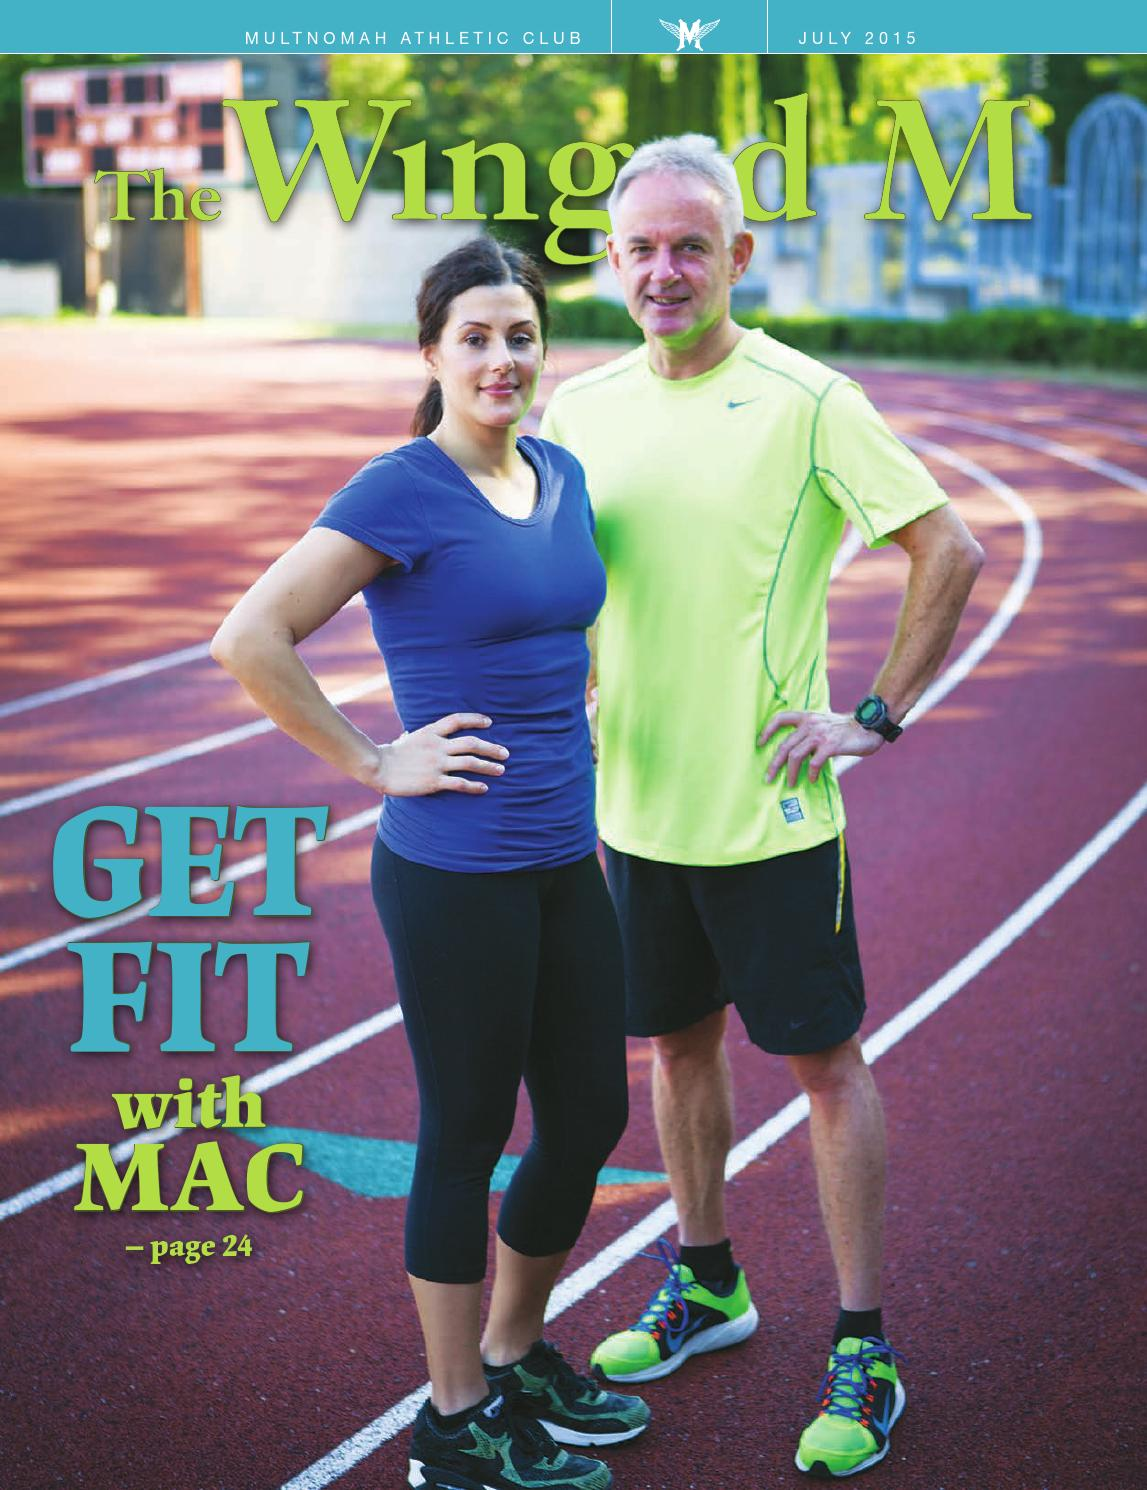 ea9bf6c335be The Winged M July 2015 by Multnomah Athletic Club - issuu